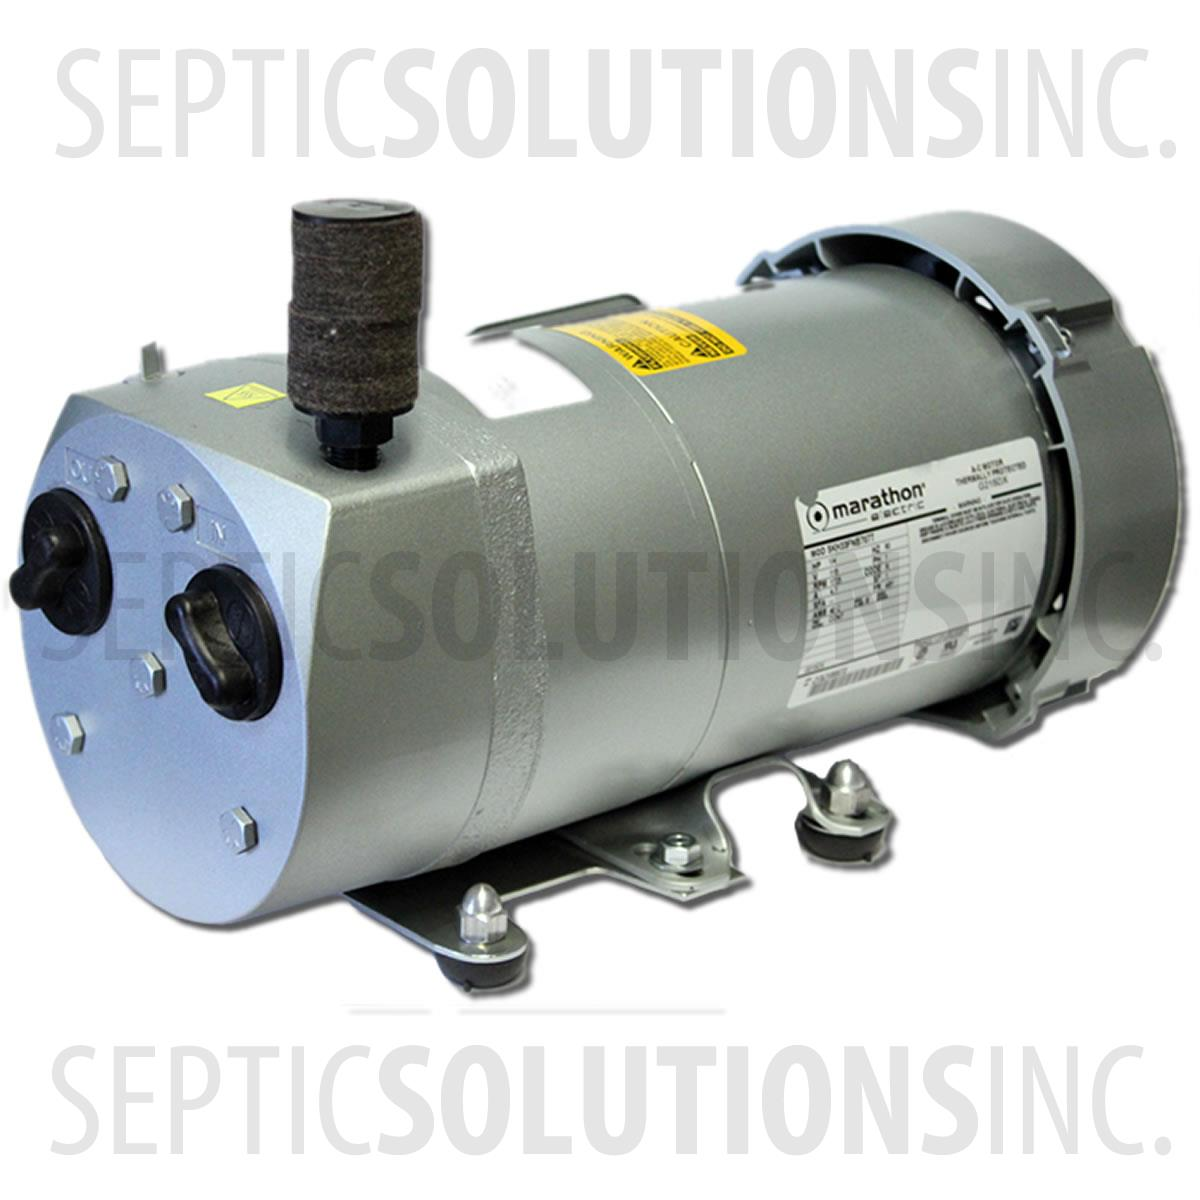 CS500RV_1?w=600 clearstream aerobic septic system air pumps and repair parts  at cos-gaming.co